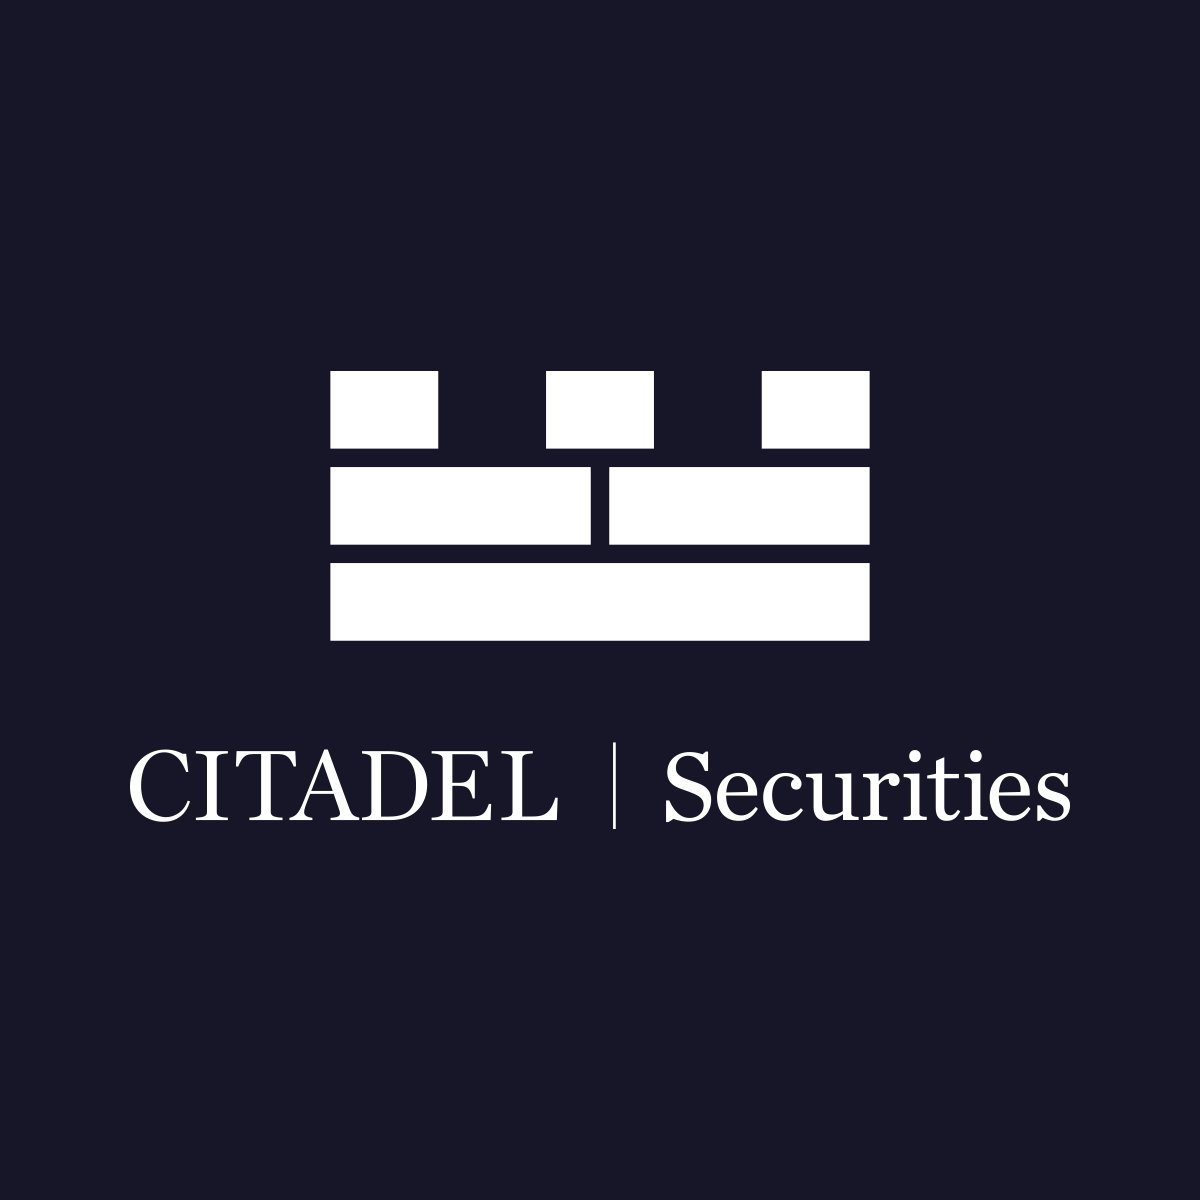 Citadel Securities